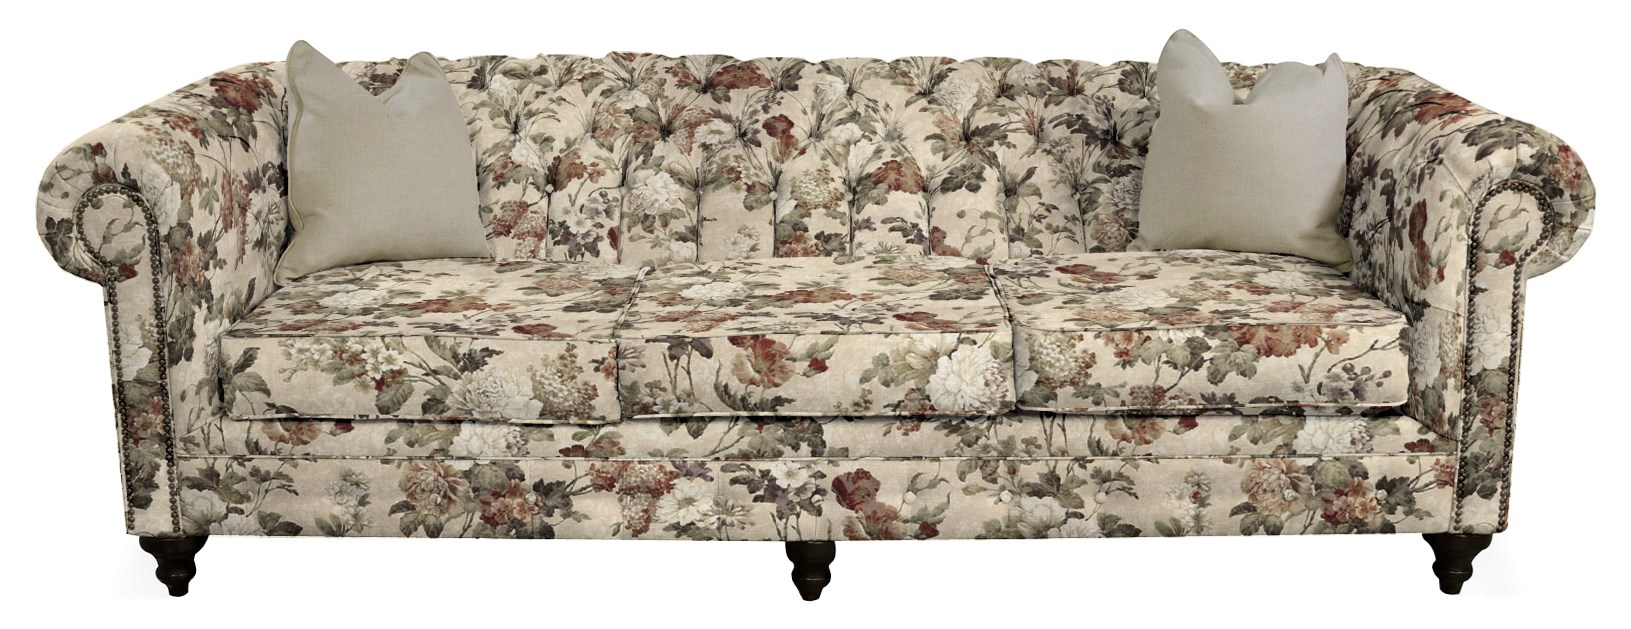 Rondell Sofa by England at Lapeer Furniture & Mattress Center